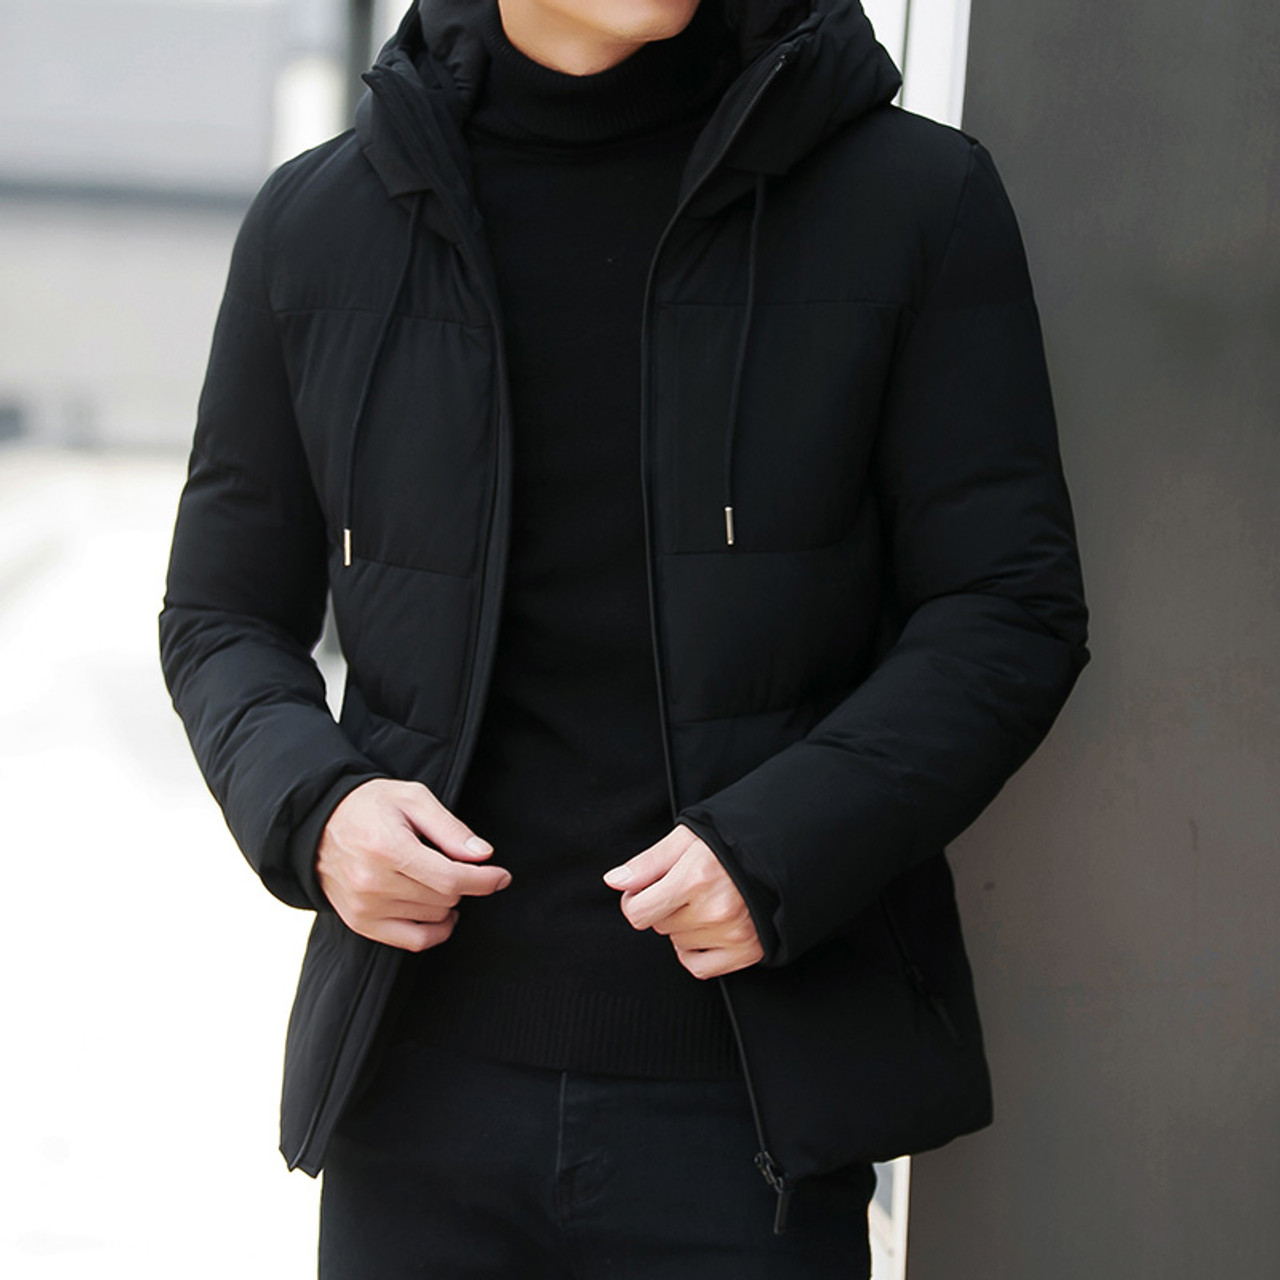 b2db7844d Winter Jacket Men Parka Fashion Hooded Jacket Slim Cotton Warm Jacket Coat  Men Solid Colo Thick Down Parka Male Outwear Clothing